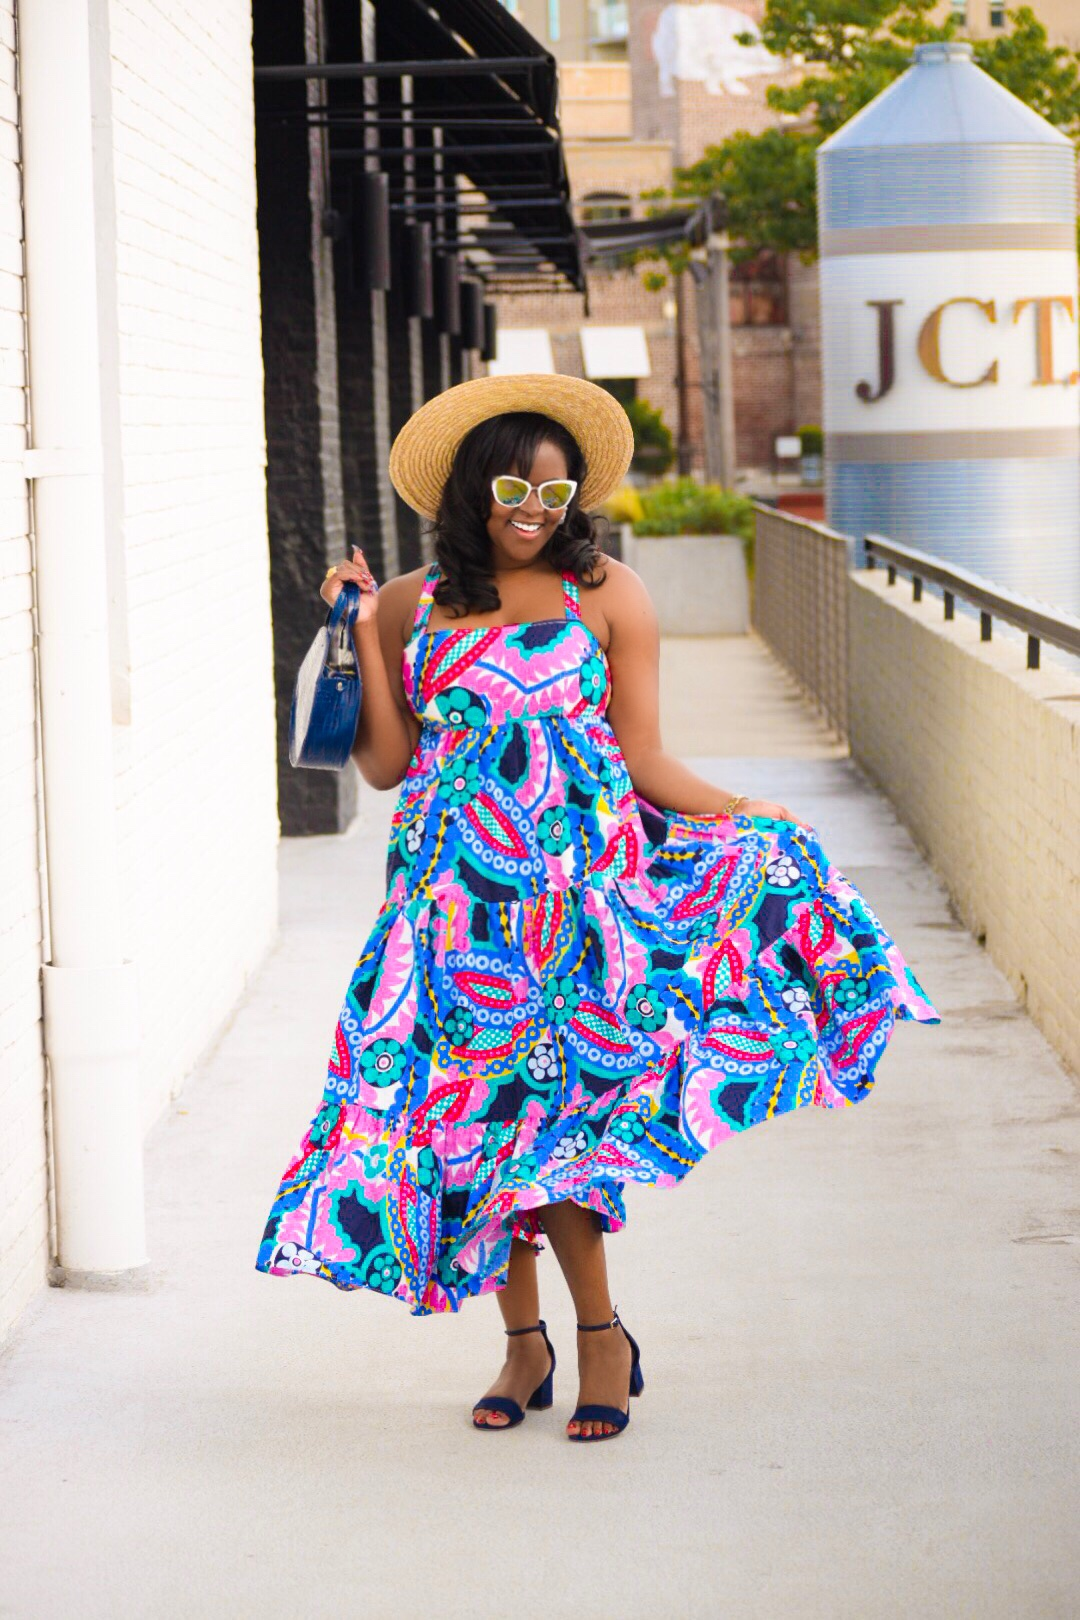 J Crew Ratti Dress (not available online, but check your local store. Also check out more  pieces  in this print), Aldo  Sandals , Anthropologie Bag (old), Urban Outiftters  Hat  (I also love this  one ), H&M Earrings (old)